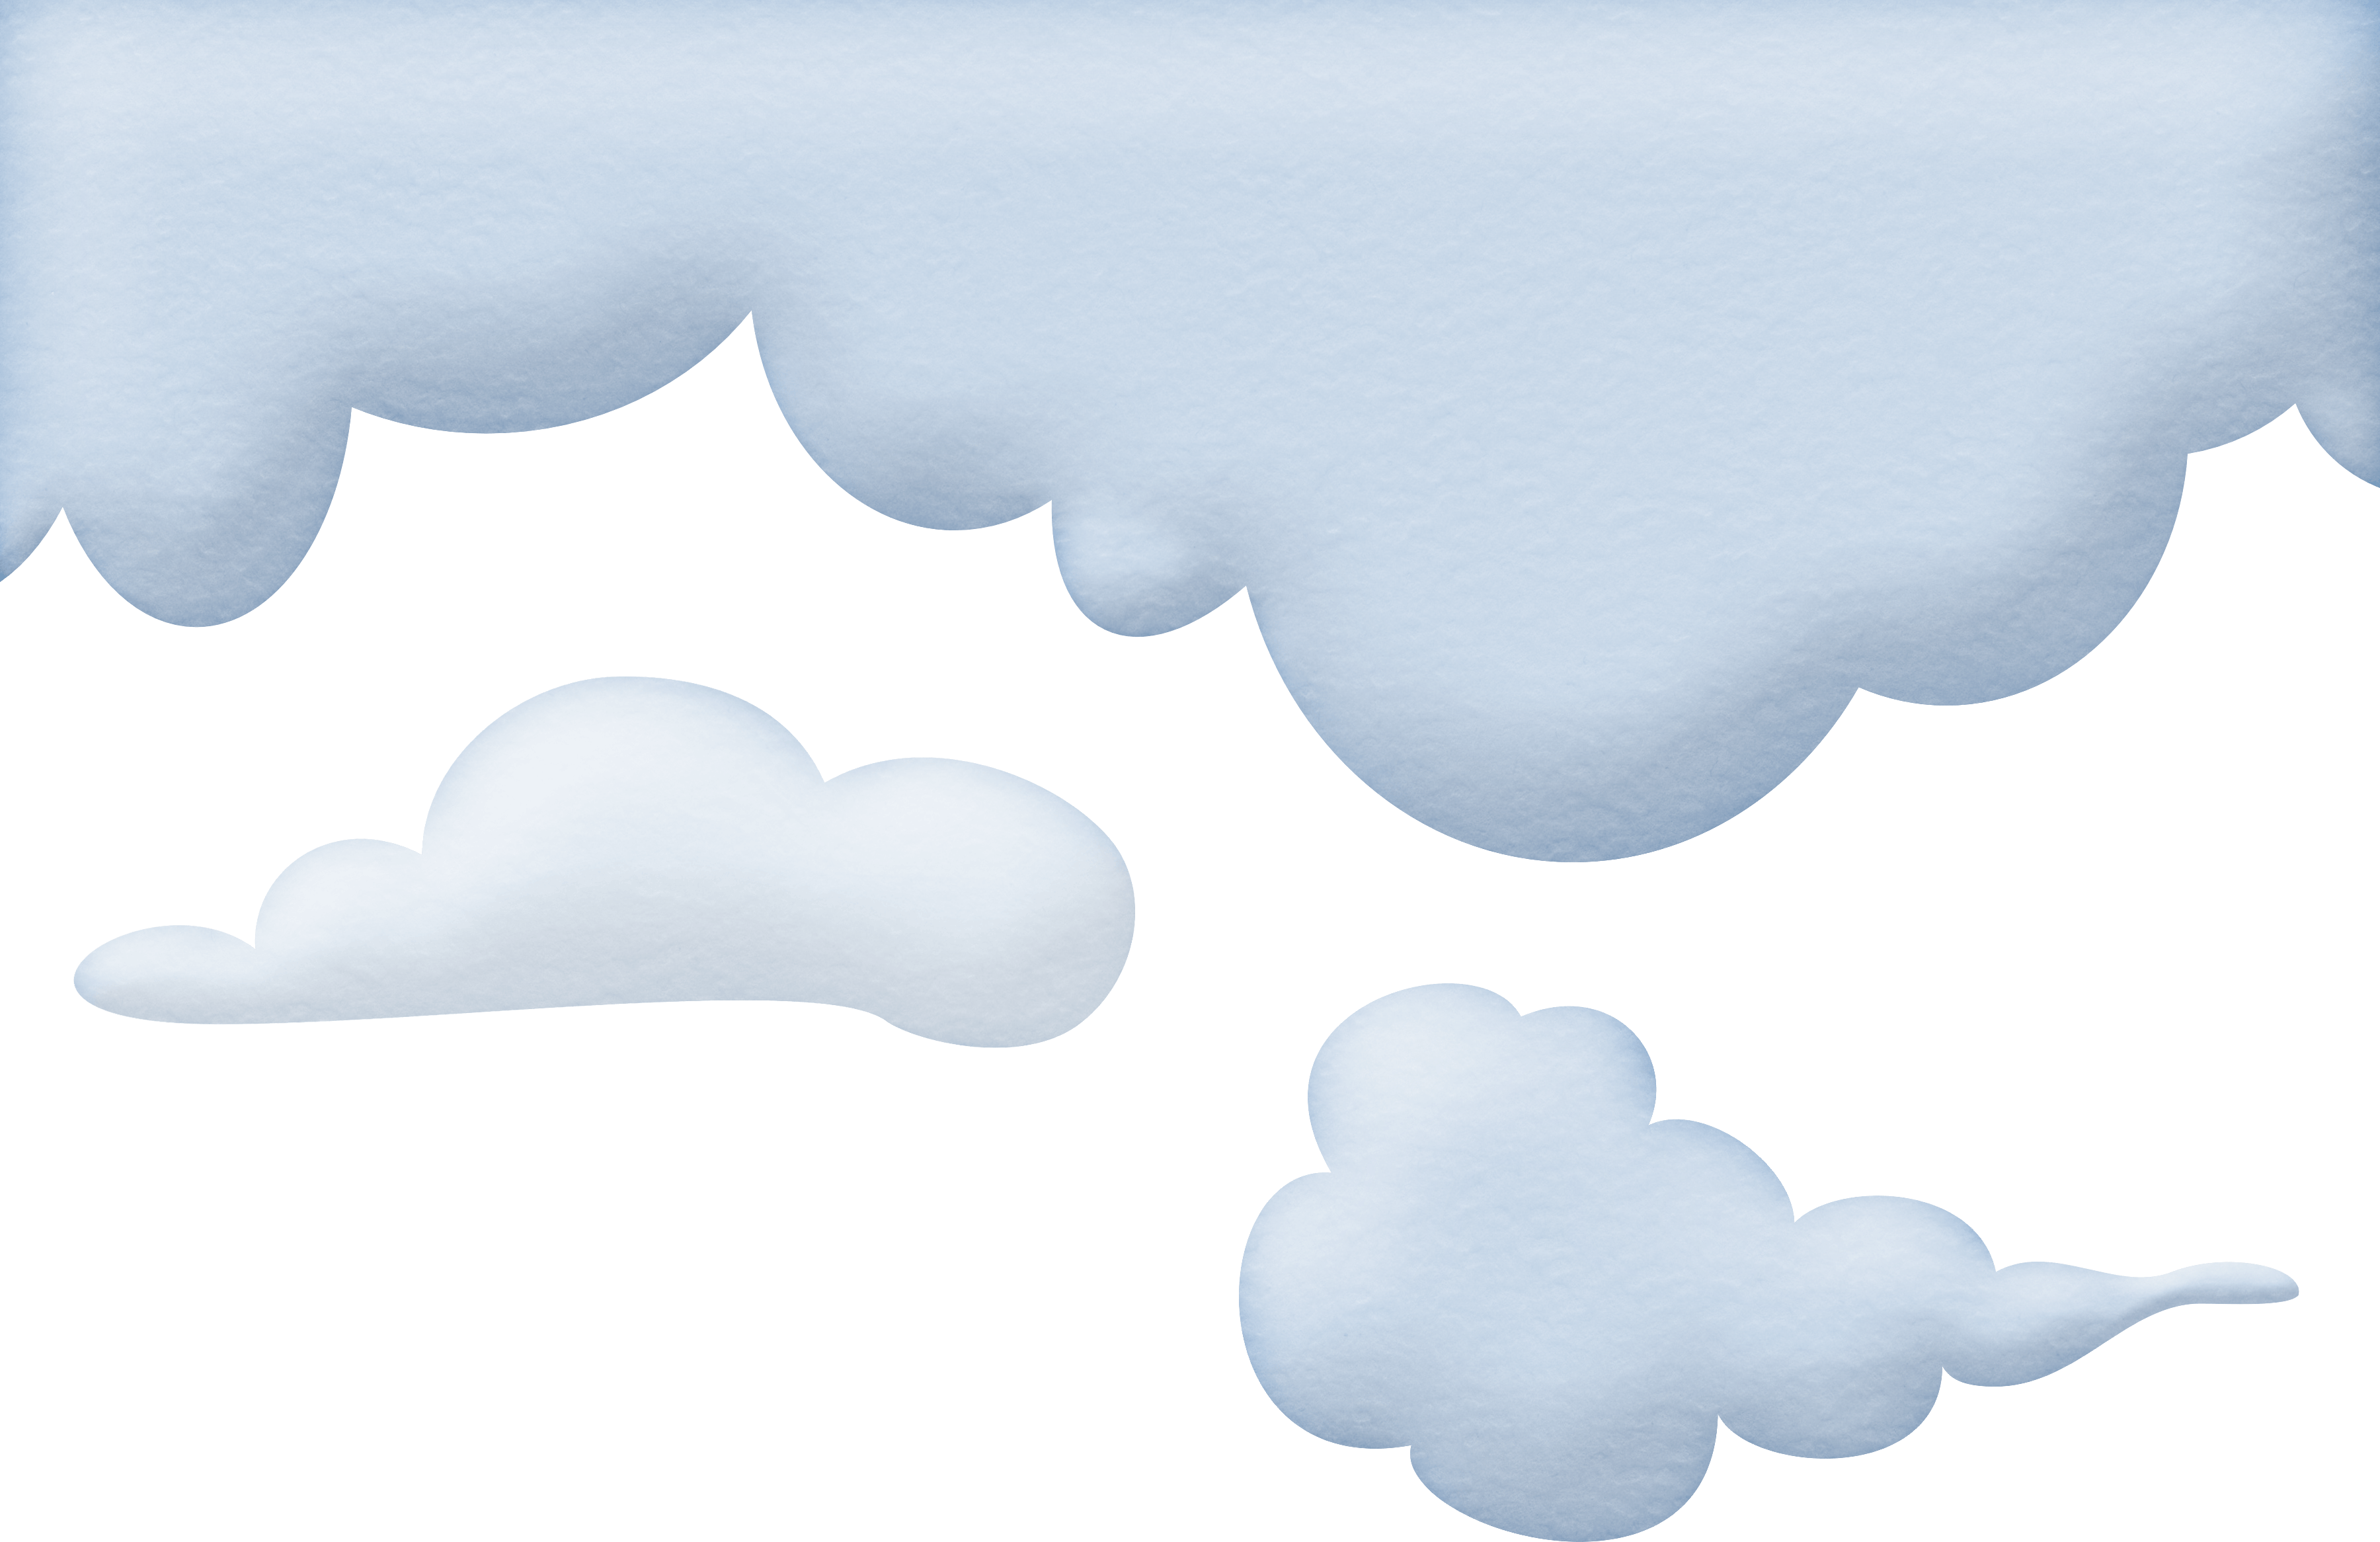 Toy story clouds png. Download cloud image hq